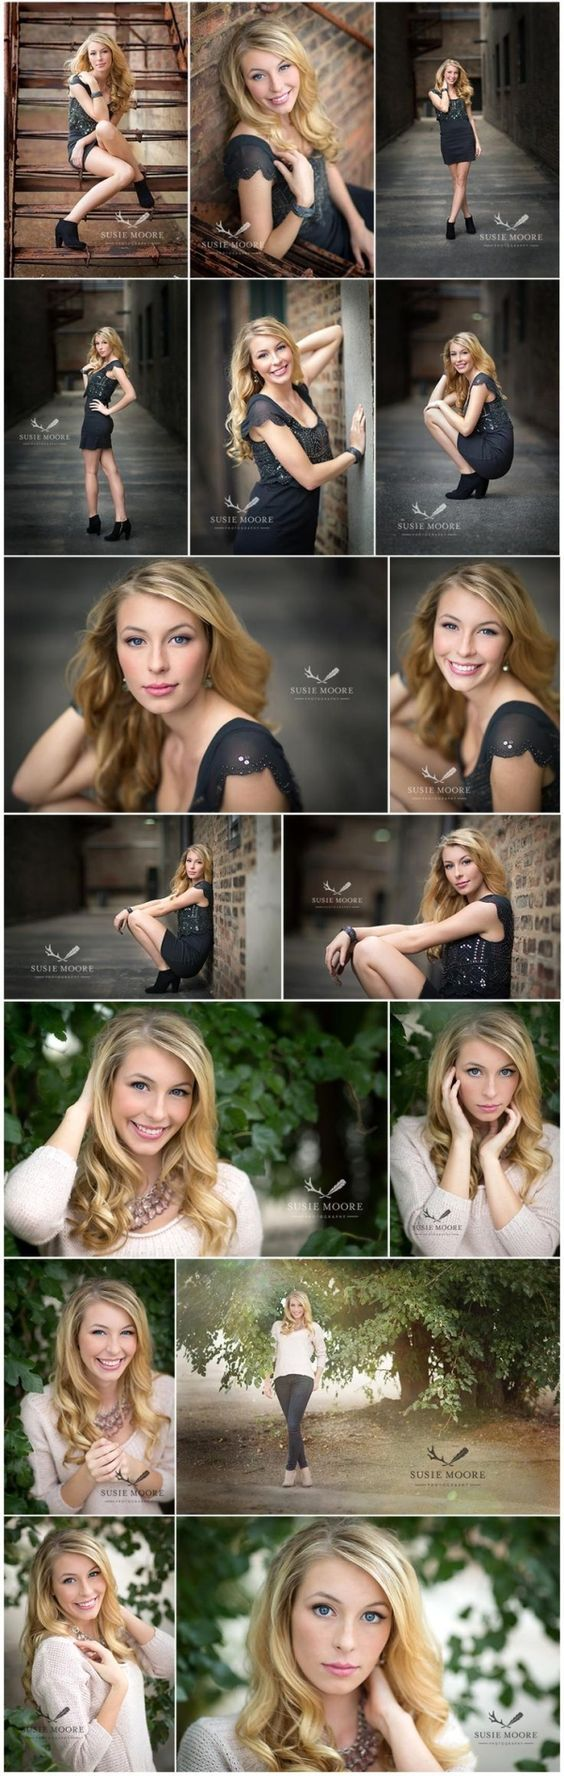 Senior Girl | Senior Pictures | Indianapolis Senior Photography | Susie Moore Photography by lakeisha